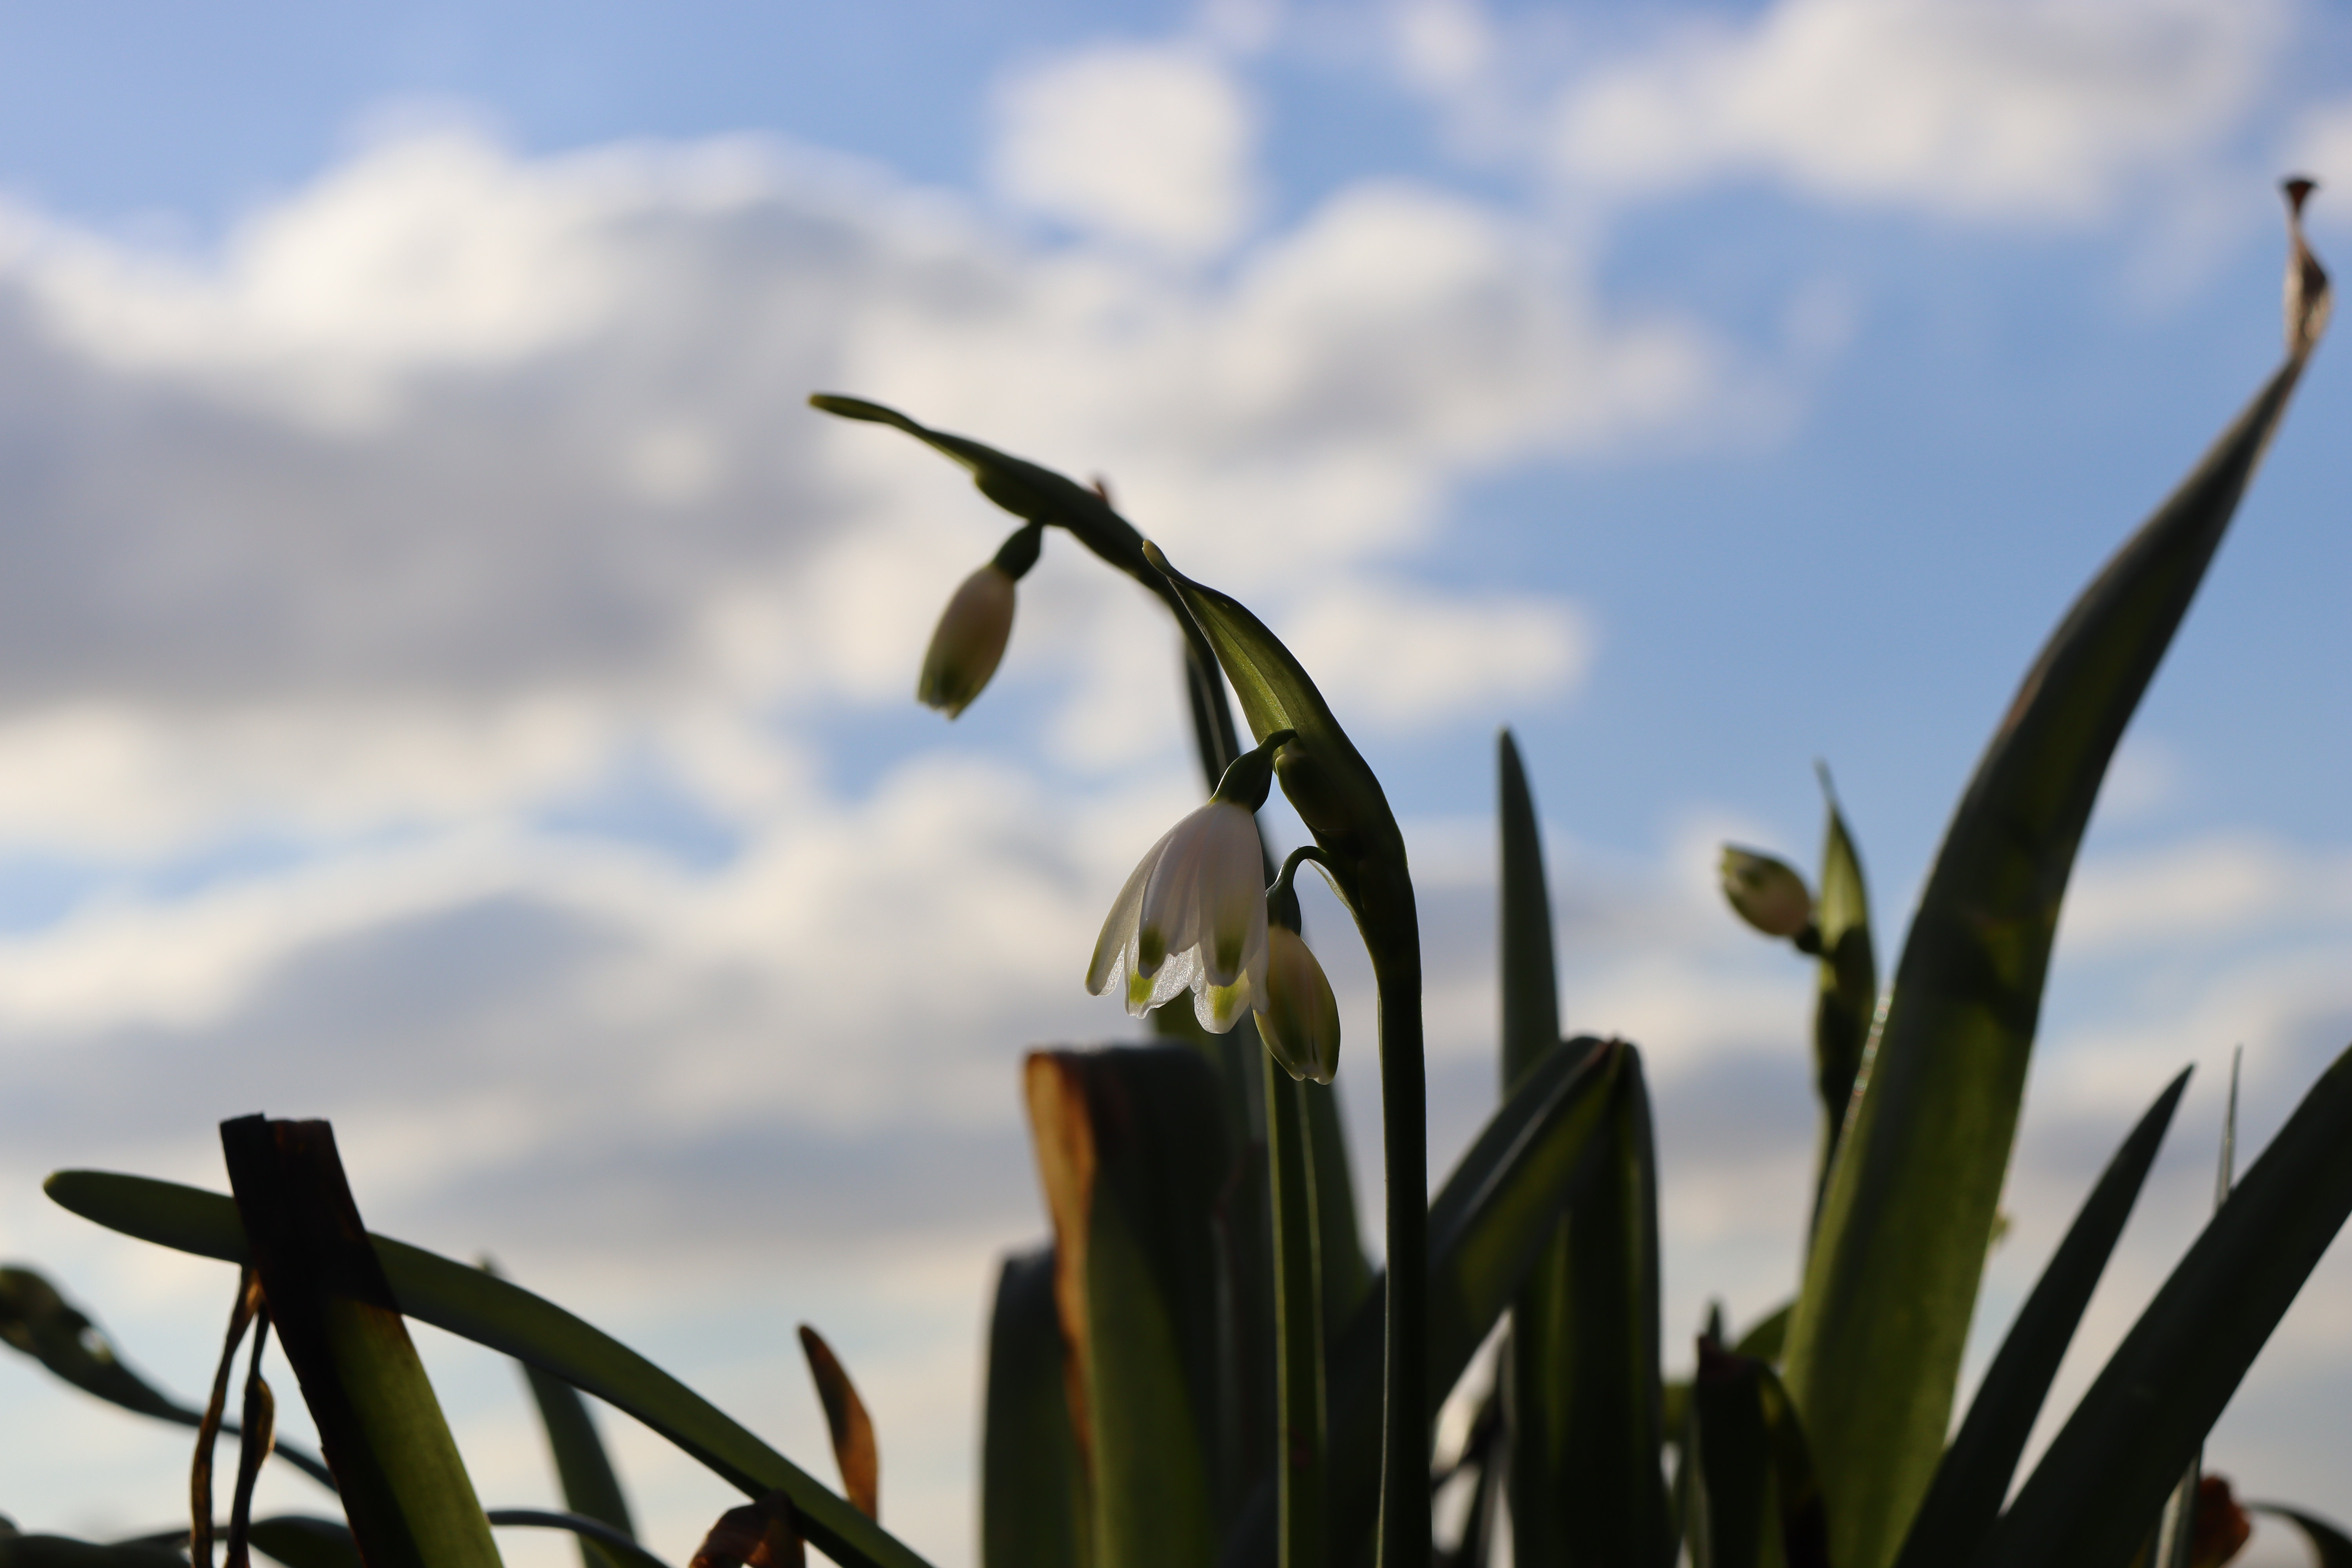 A close up of some white flowers that have green stems.